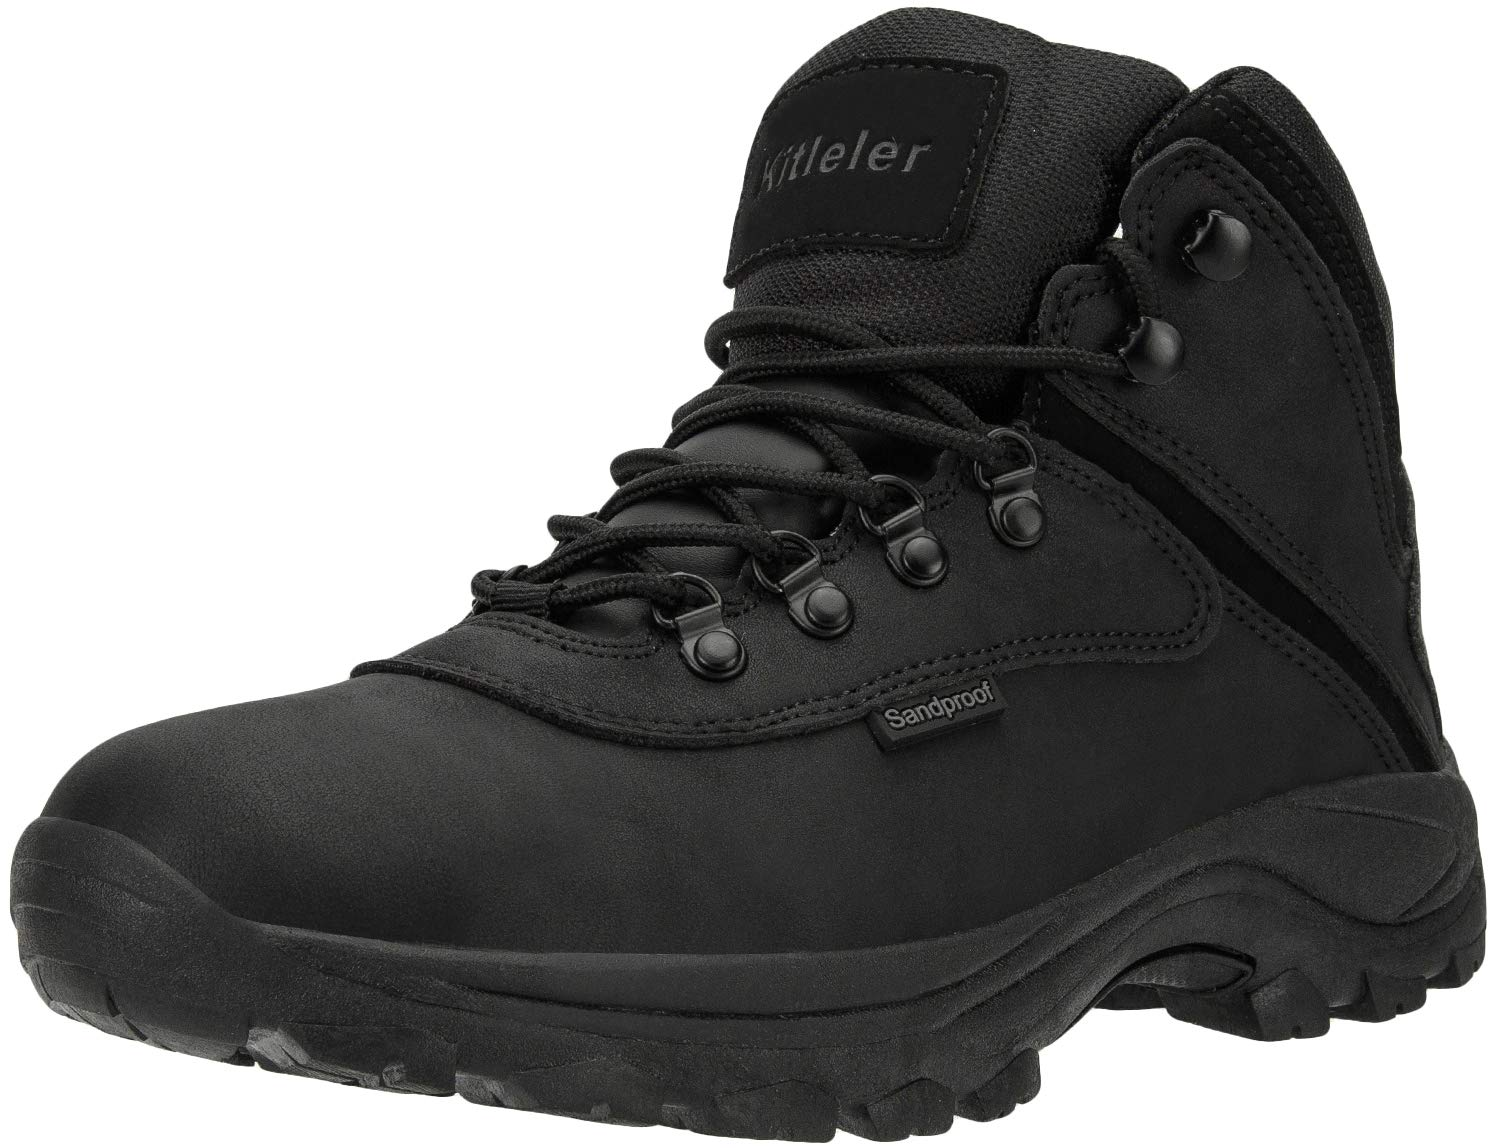 Kitleler Men's Waterproof Hiking Boots Lightweight Outdoor Sandproof Boots (8808-Black-11 M us)